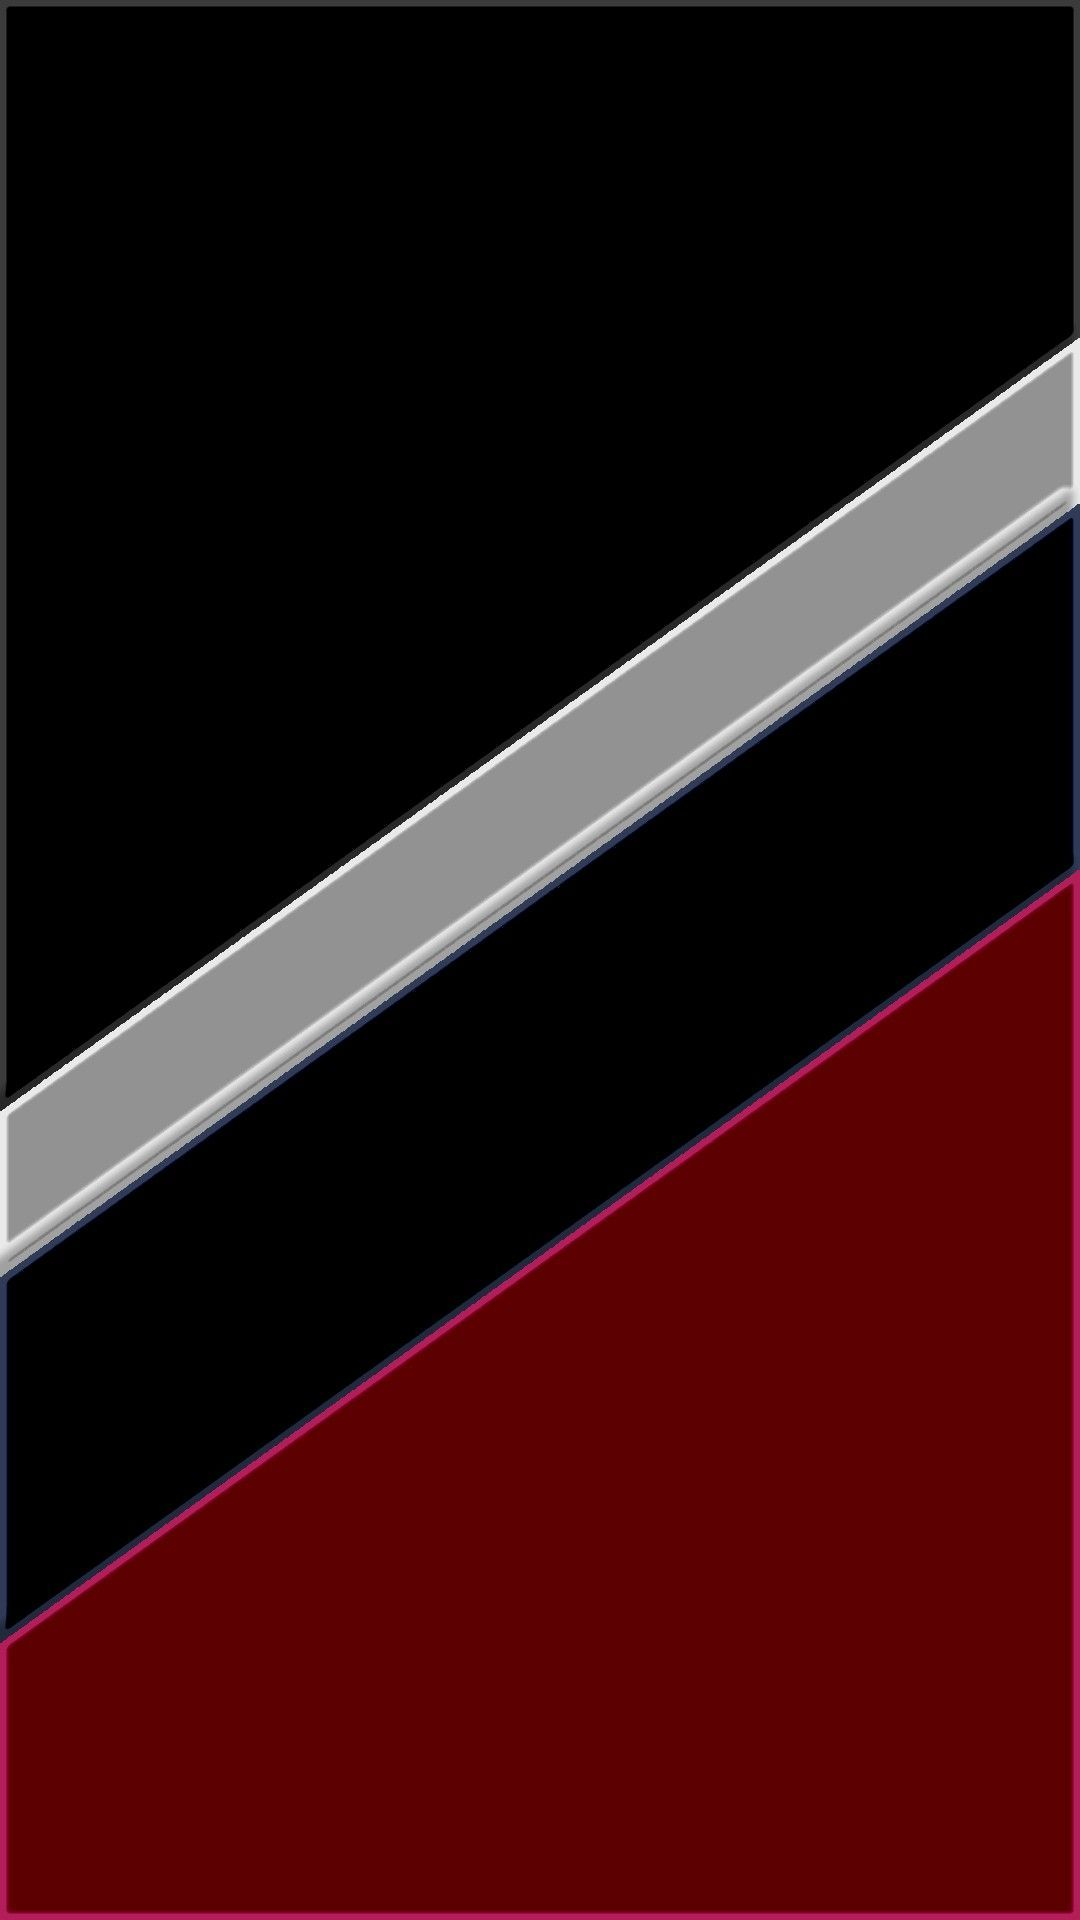 Abstract Black And Purple Phone Wallpaper Abstract Wallpaper Red Wallpaper Hd Phone Wallpapers